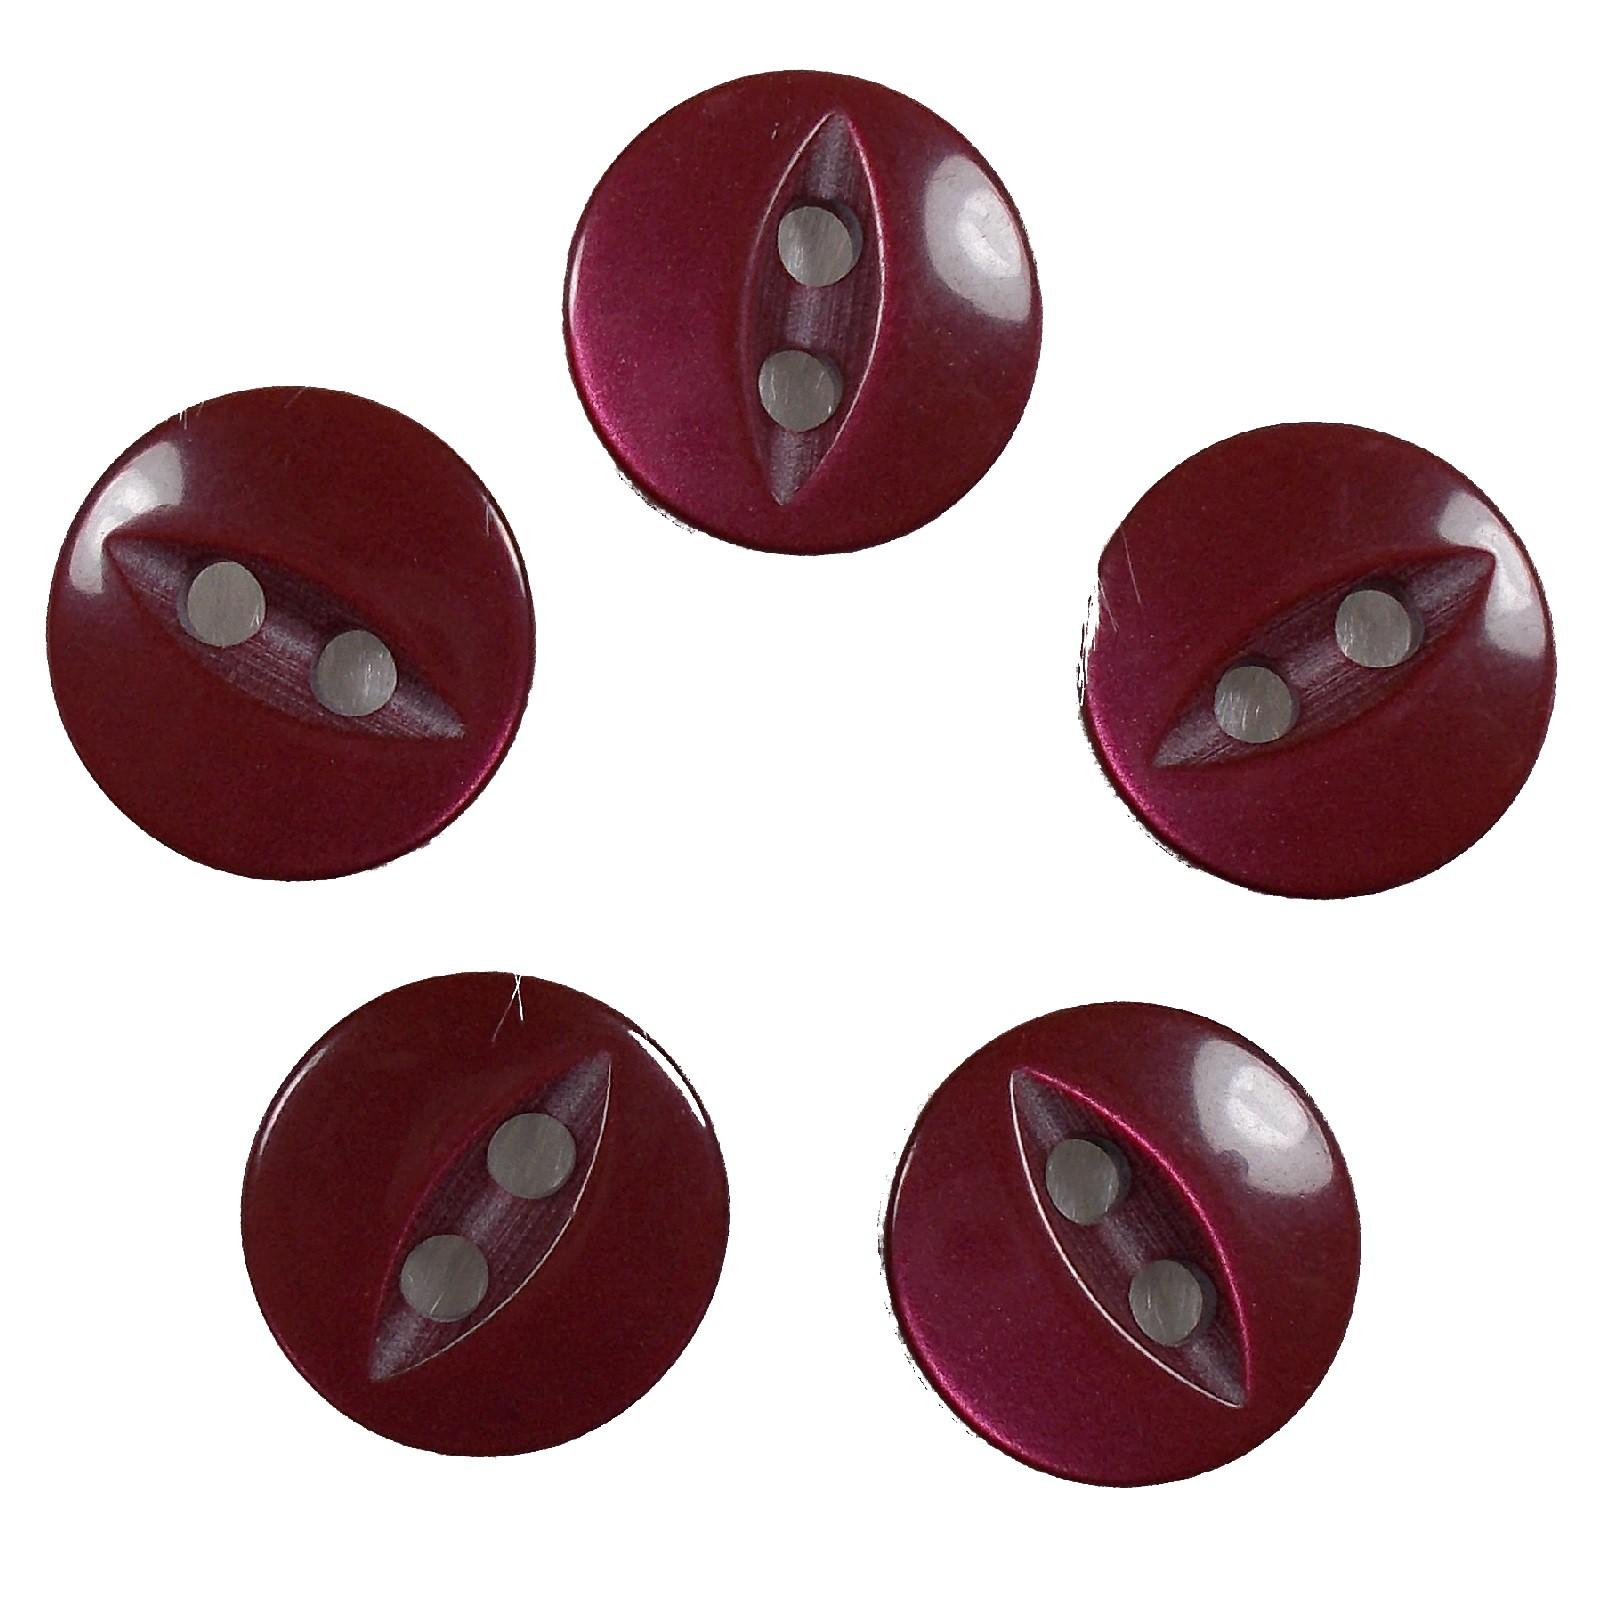 Fisheye Basic Buttons 16mm Burgundy Pack of 5